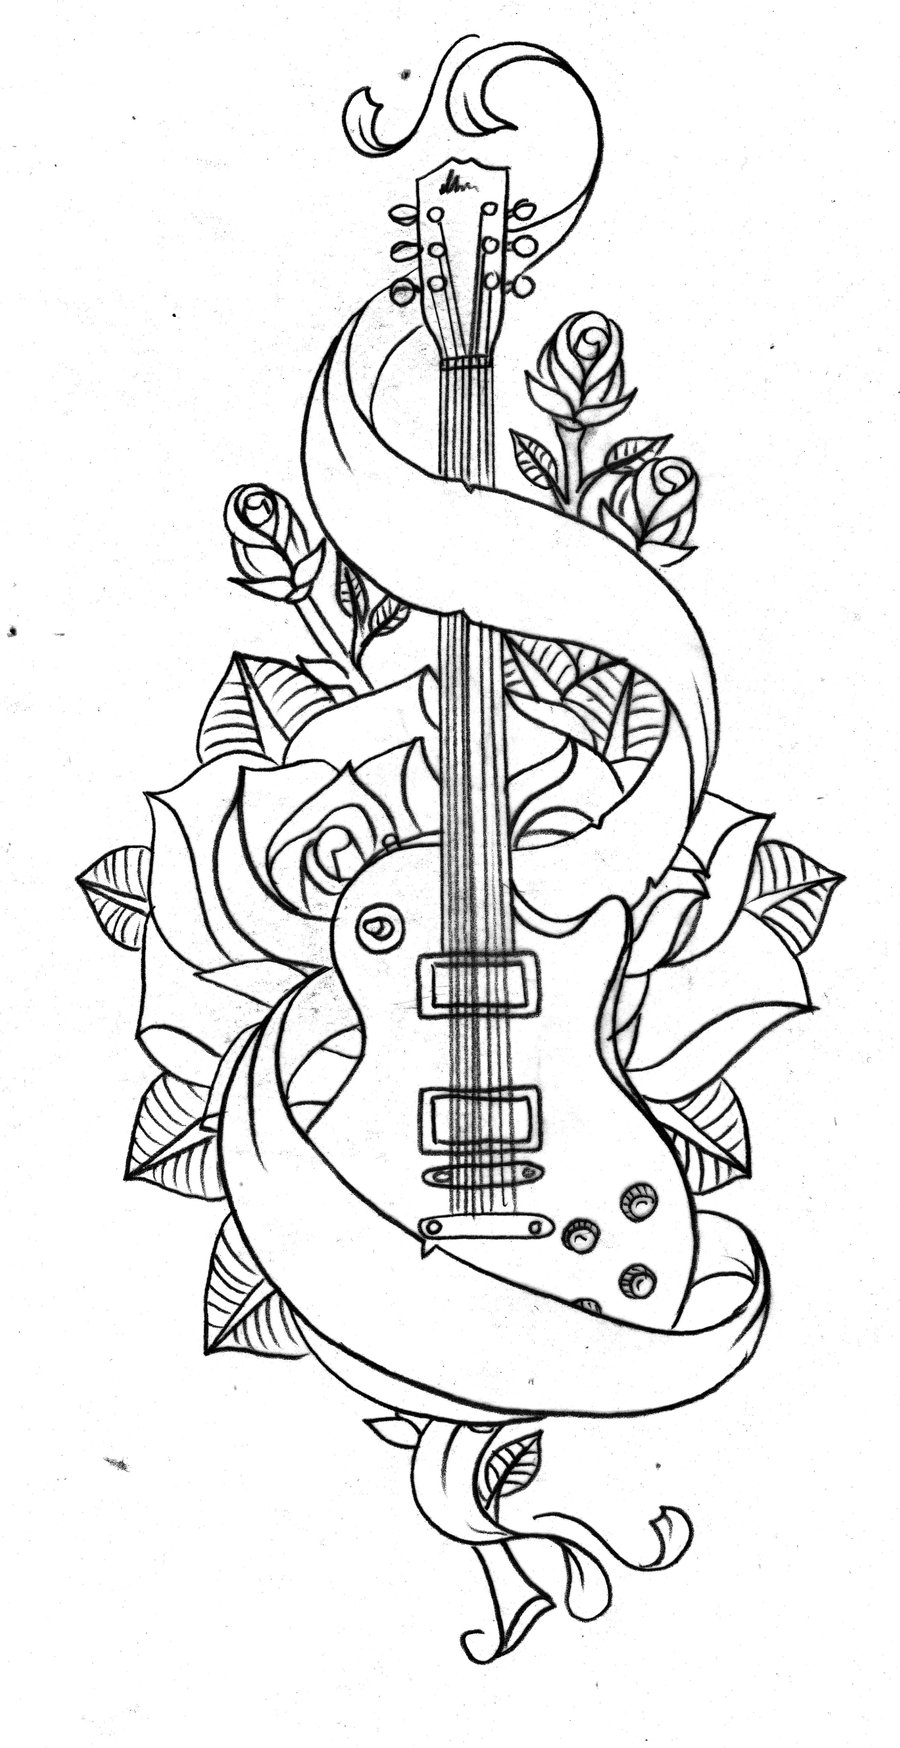 900x1748 Cool Tattoos On Coloring Pages For Girls With Music Notes